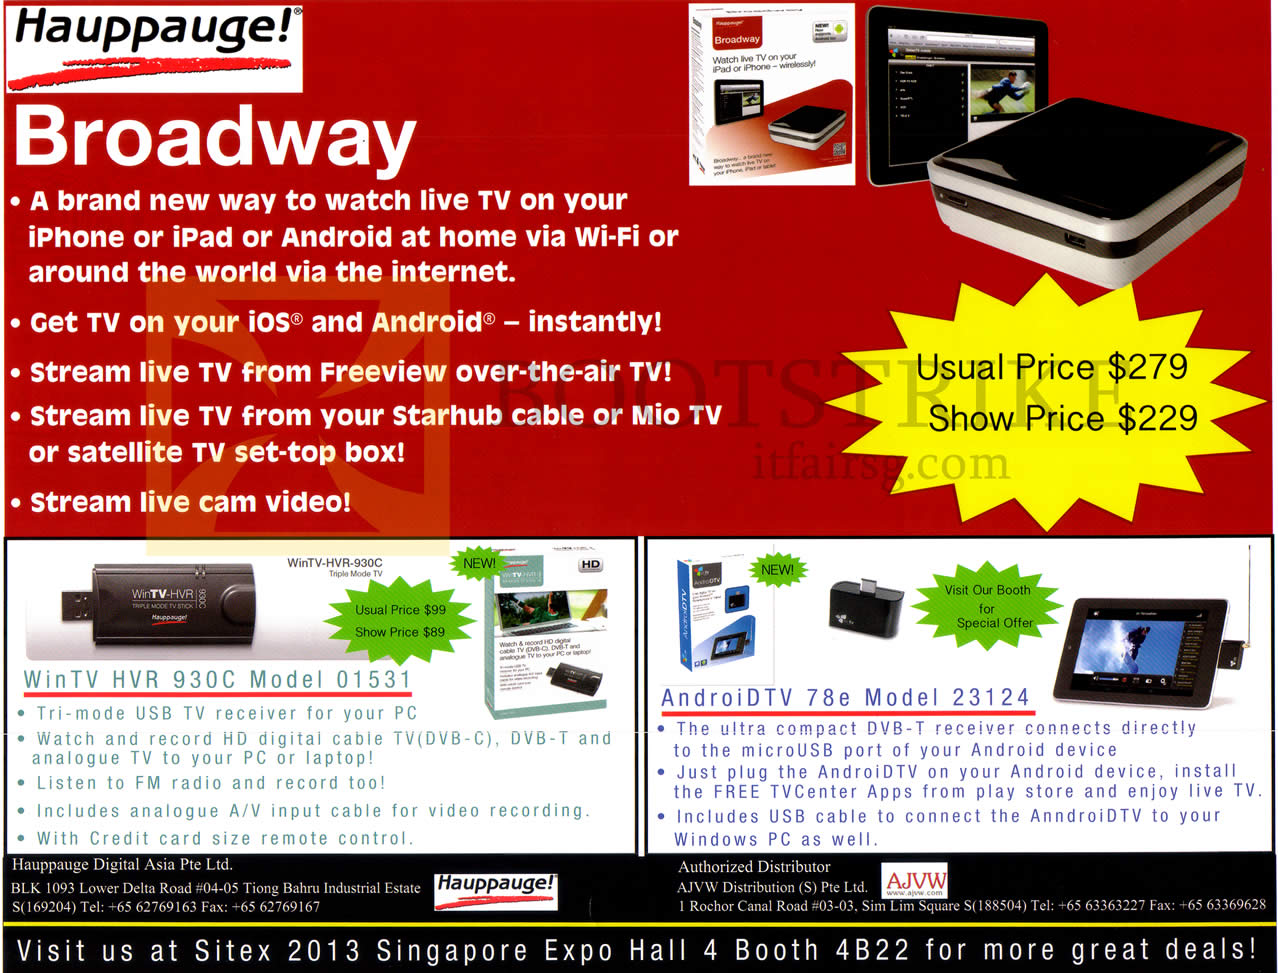 SITEX 2013 price list image brochure of Happuage Broadway, WinTV HVR 930C 01531 USB TV Receiver, AndroidTV 78E 23124 DVB-T Receiver